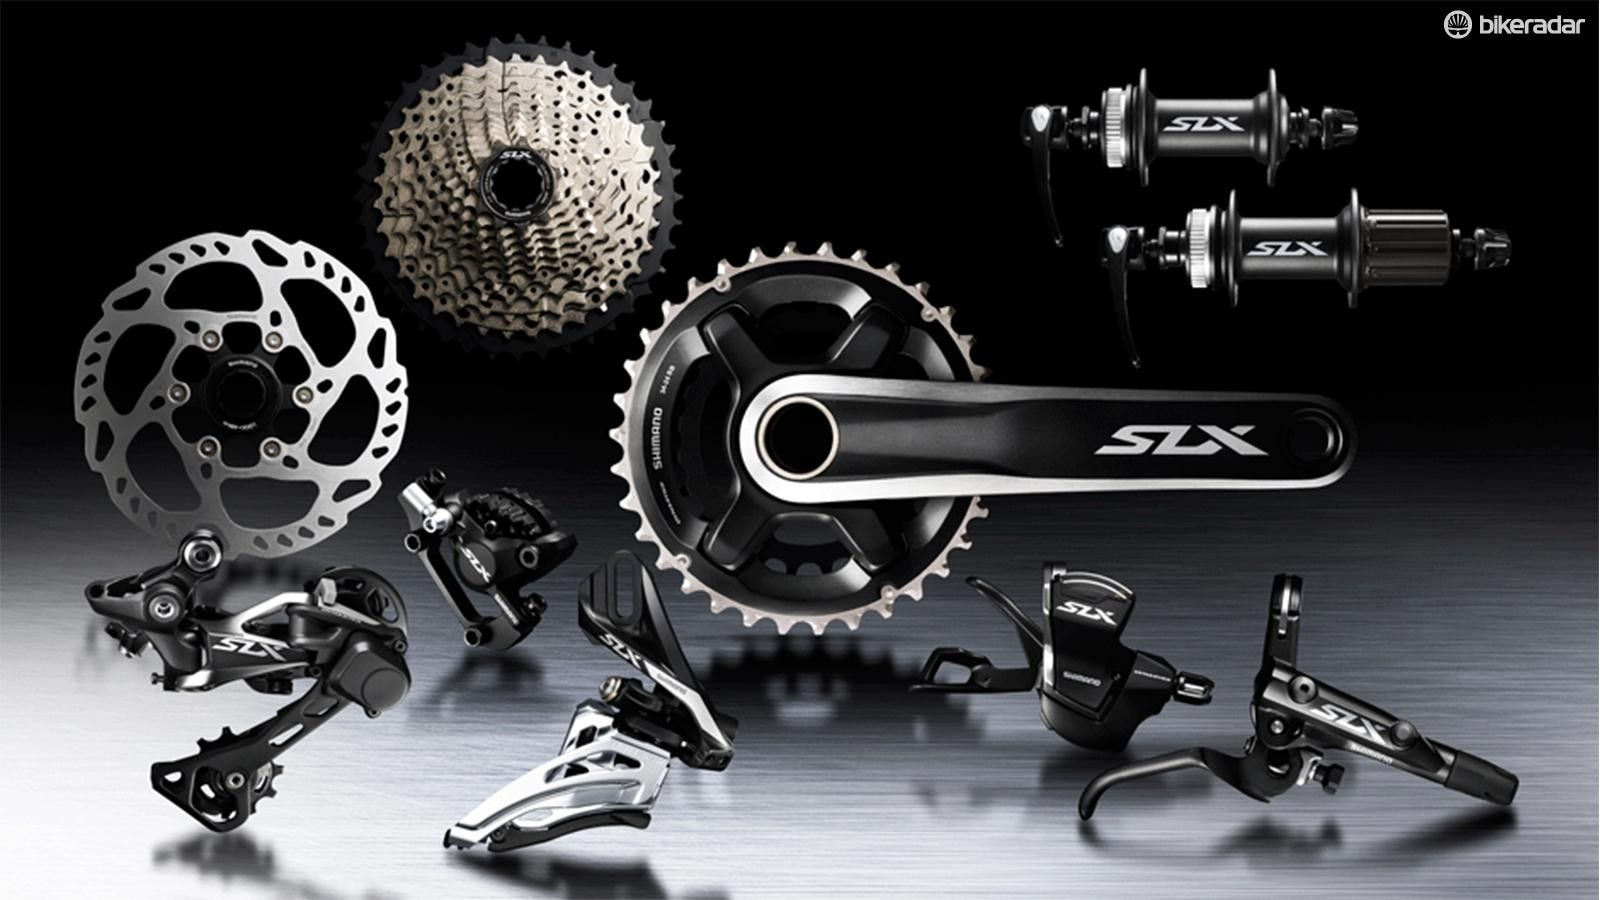 SLX is the entry into 11-speed and 1x11 drivetrains